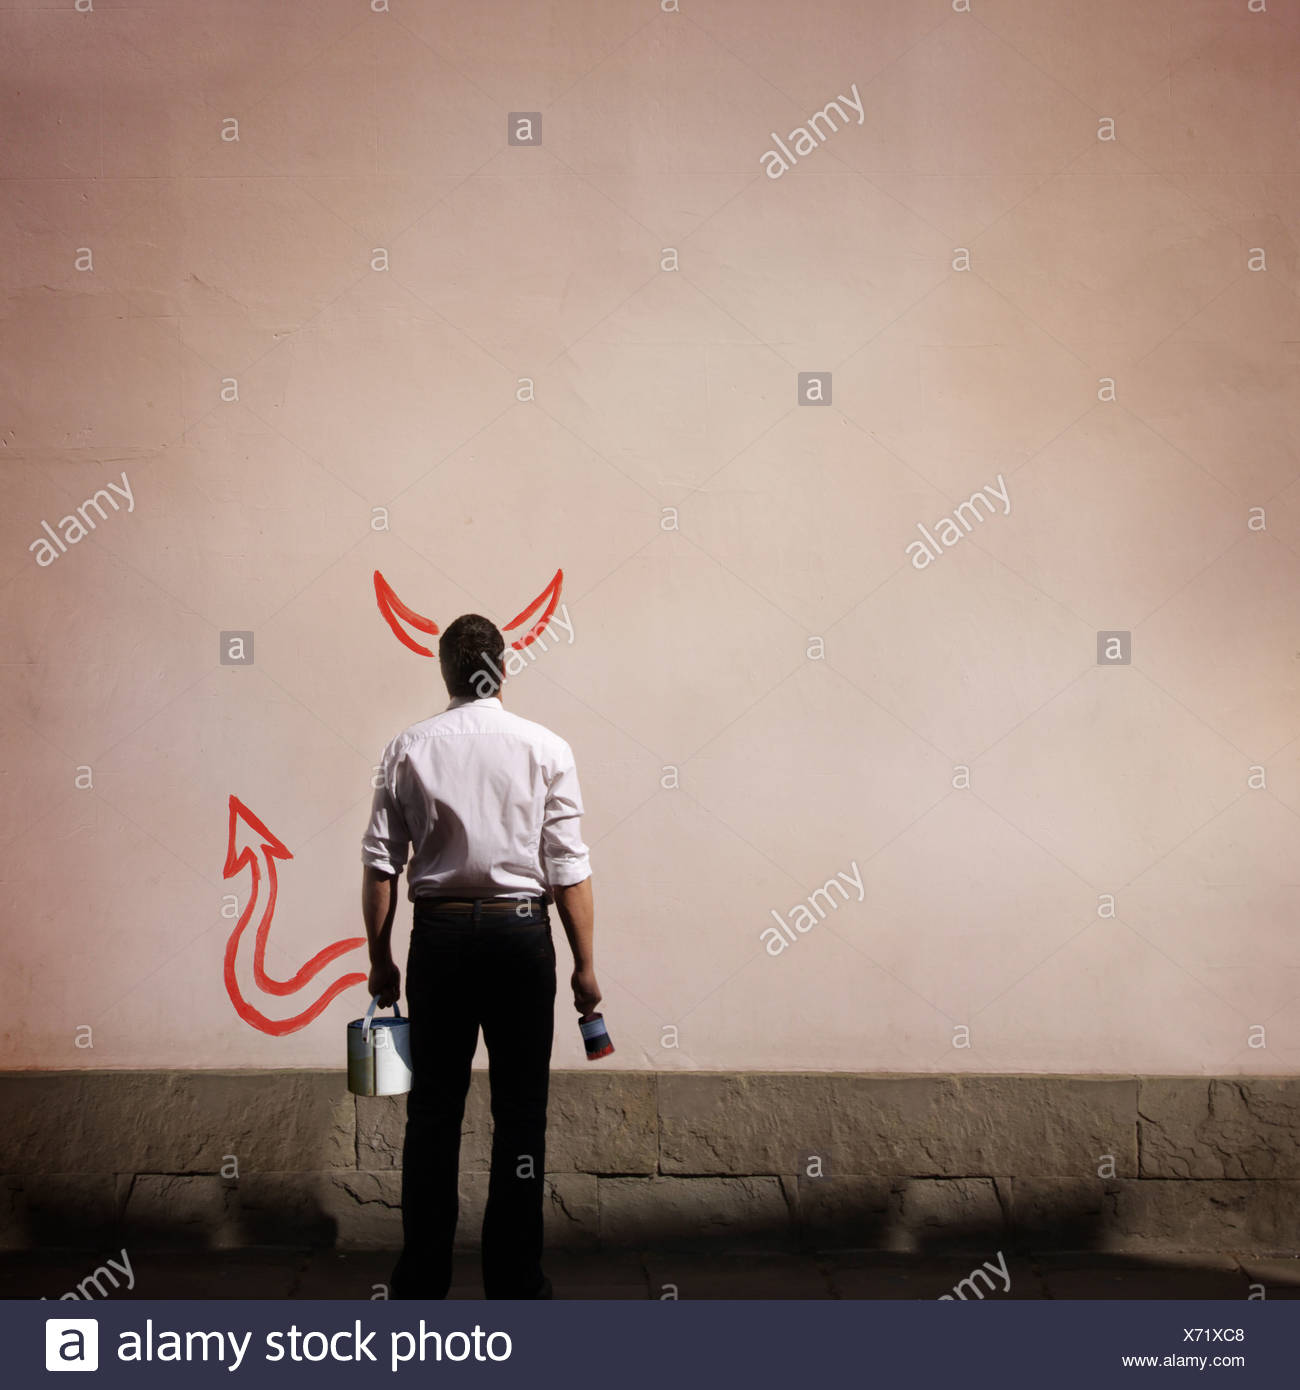 man with devil horns and tail painted on wall - Stock Image